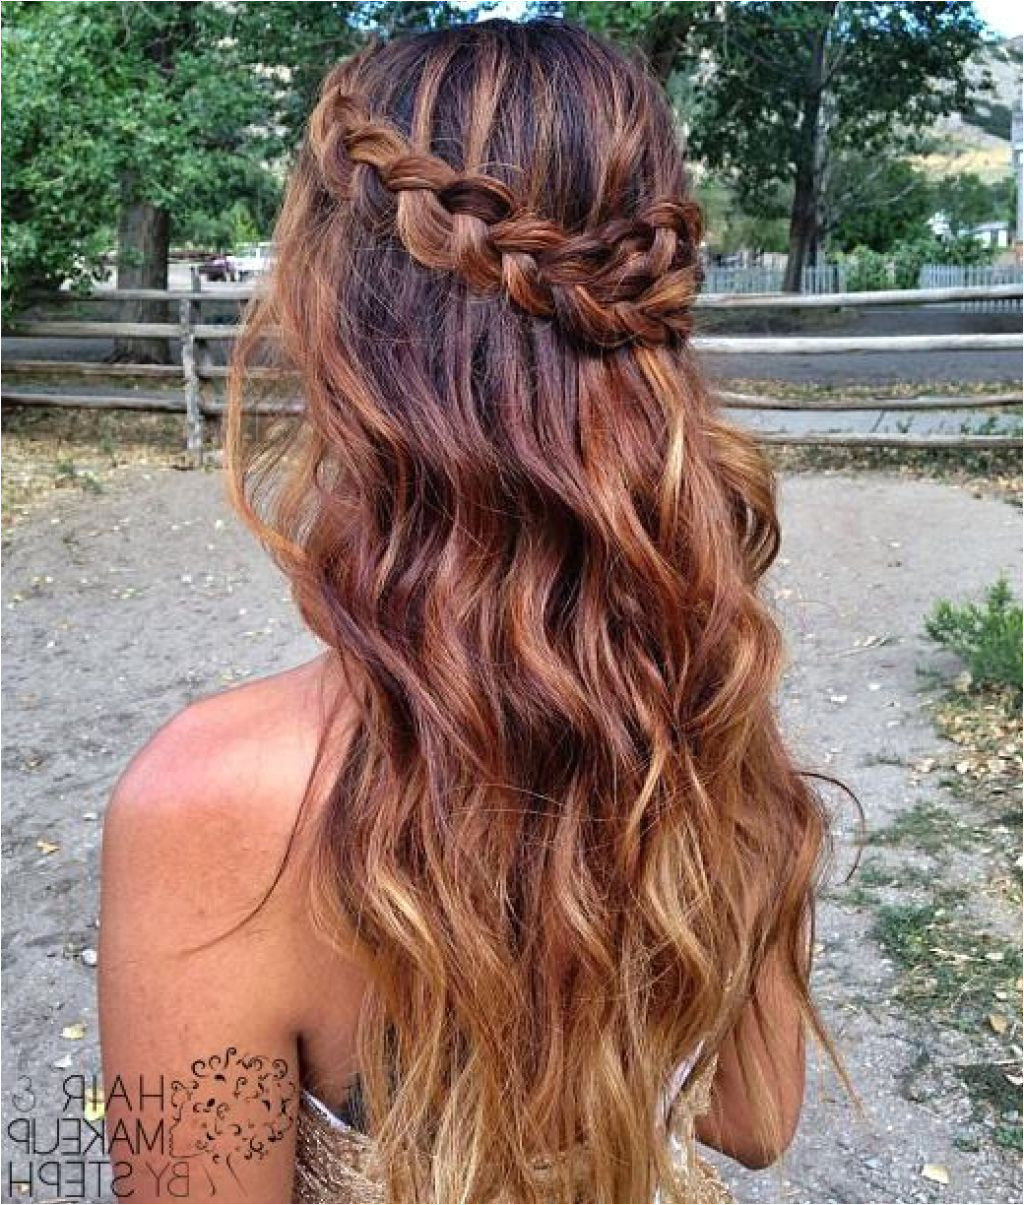 Down hairstyles for prom for womens and mens fine hair and thick hair 17